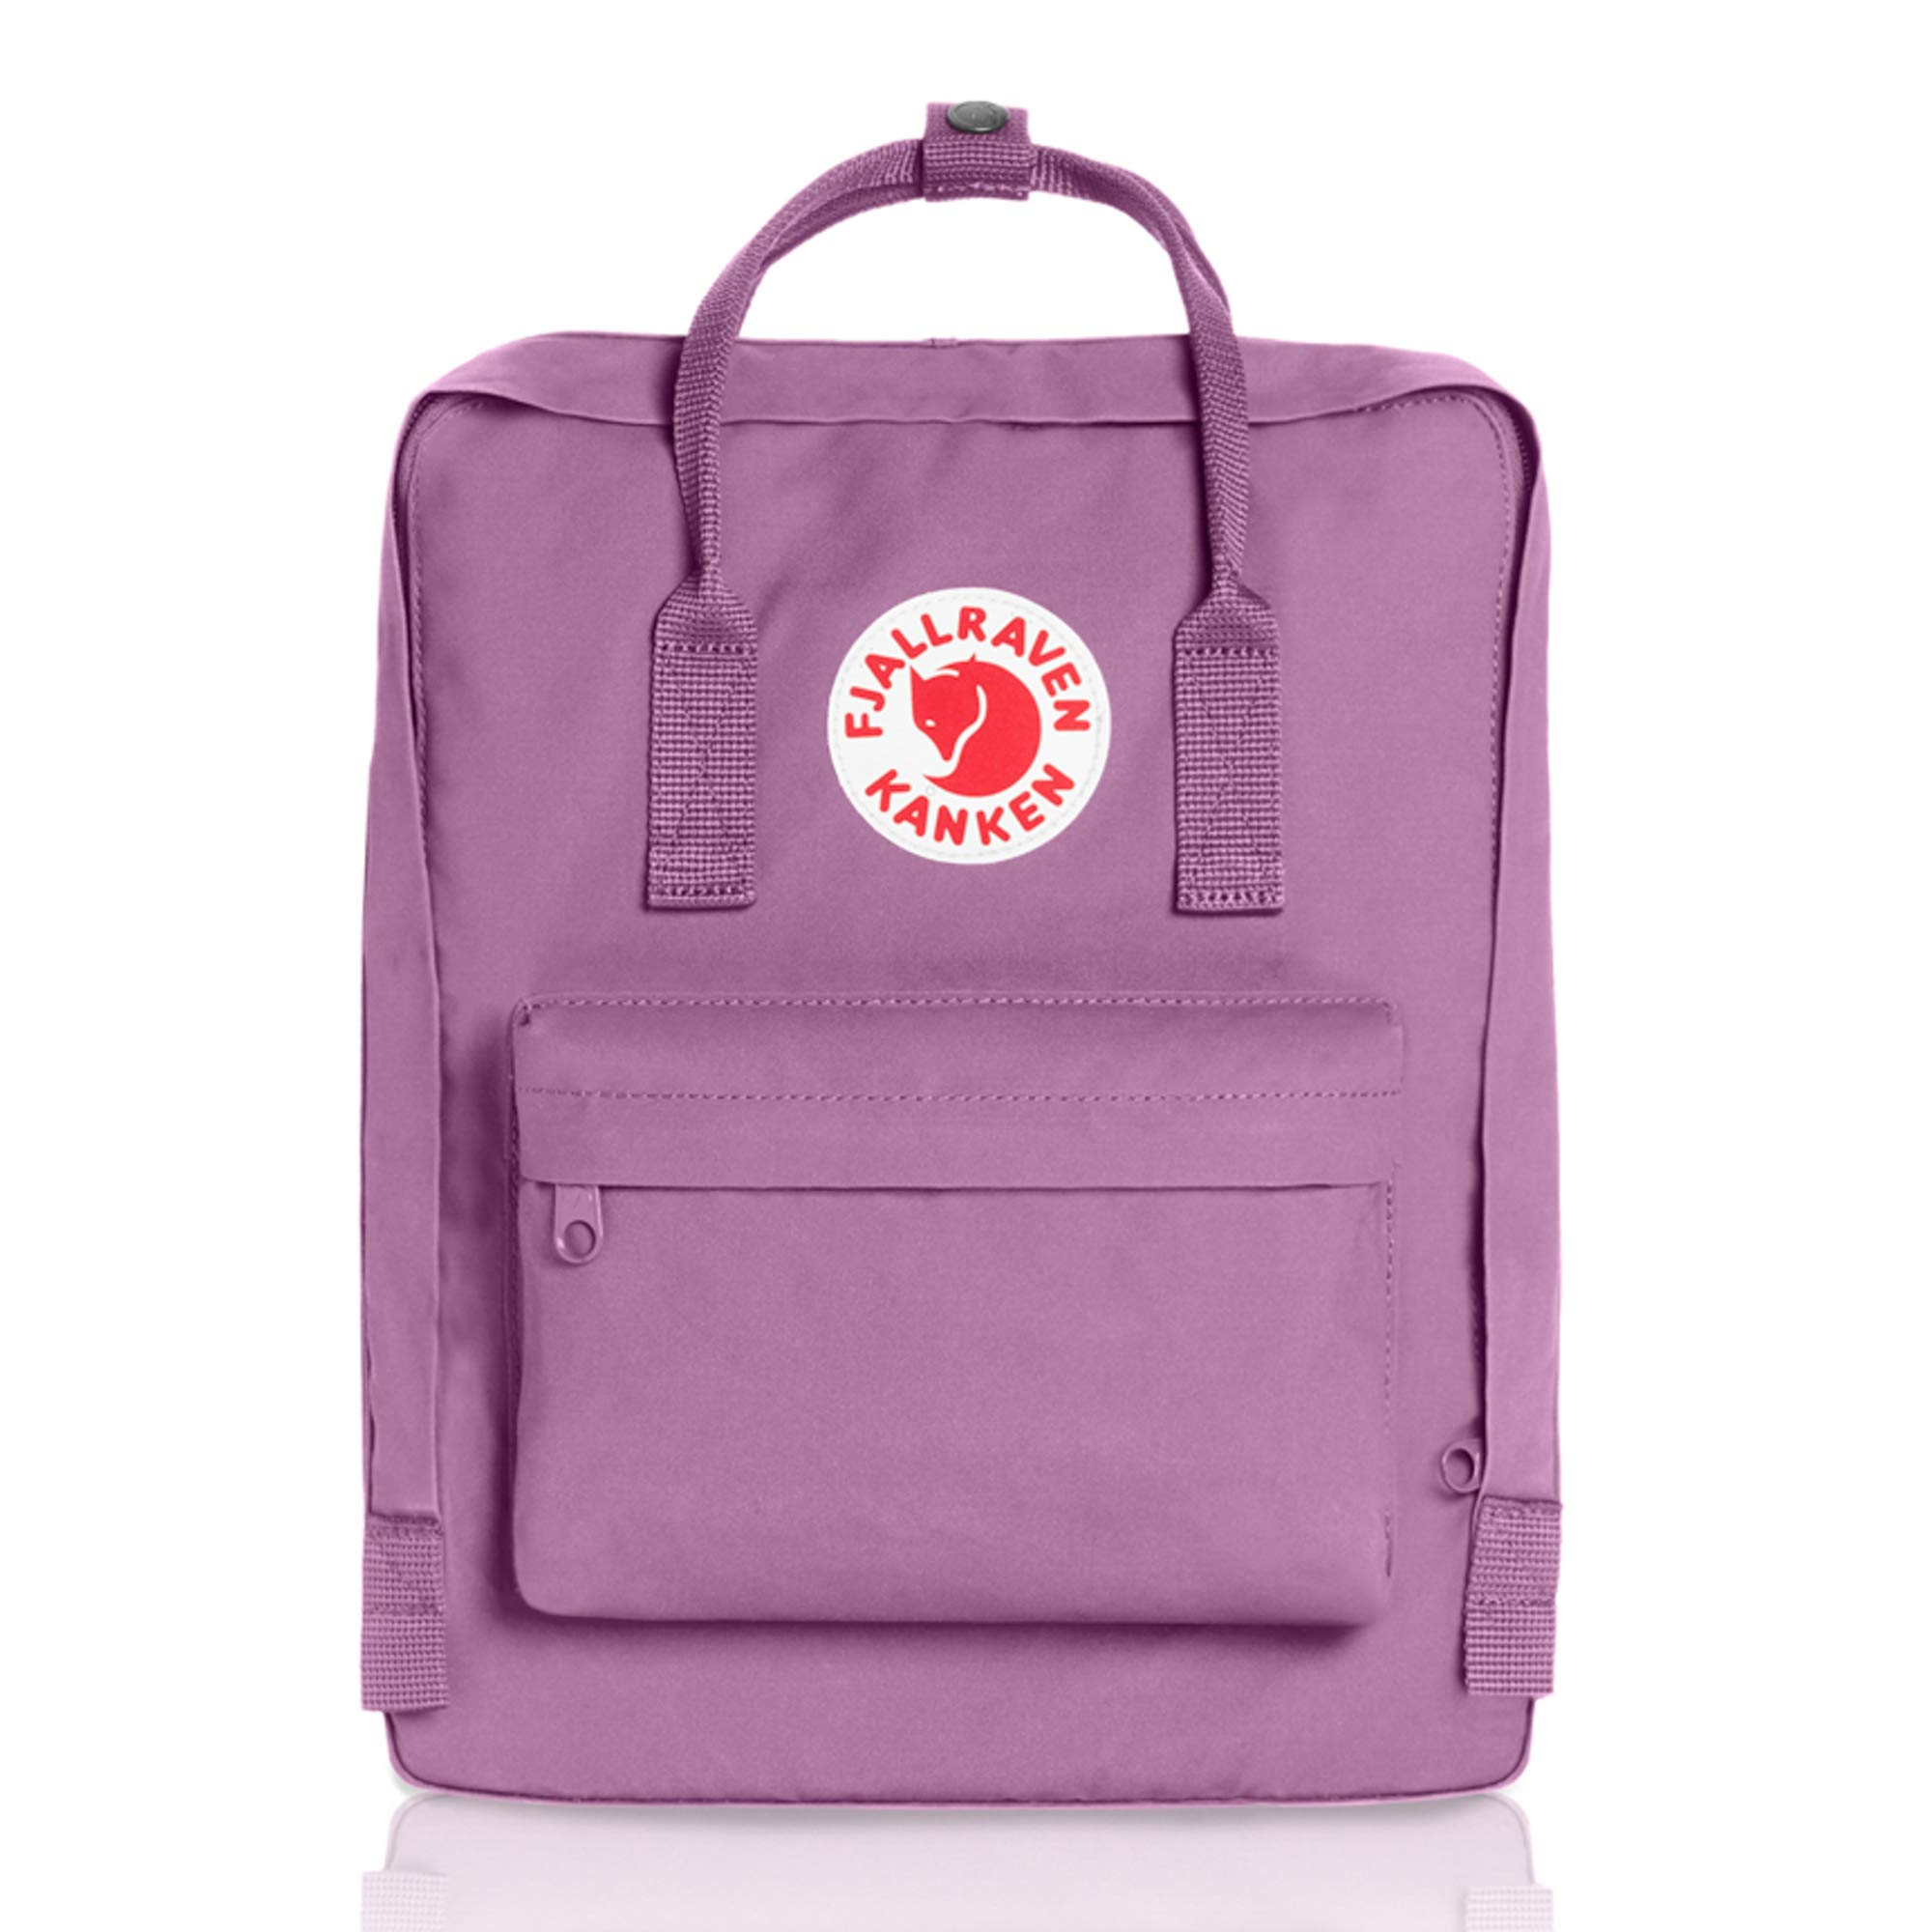 Fjallraven - Kanken Classic Pack, Heritage and Responsibility Since 1960, One Size,Orchid